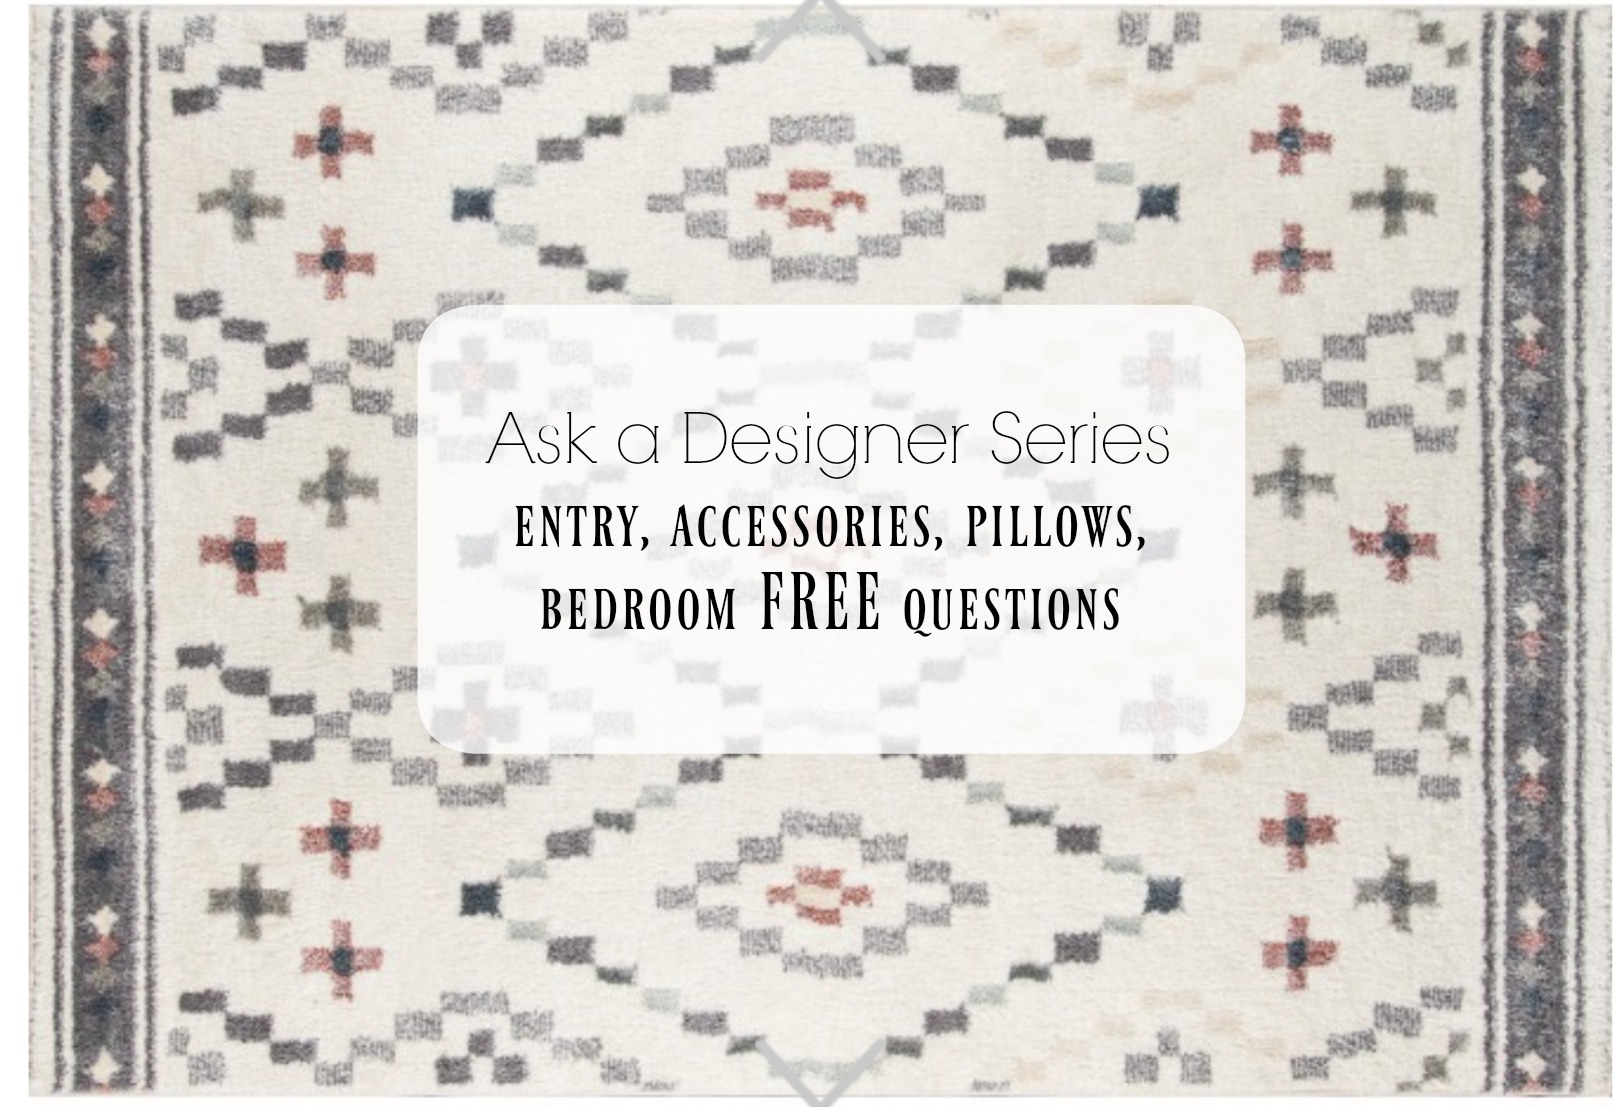 Ask a Designer Series- FREE Design Questions starting with Entries